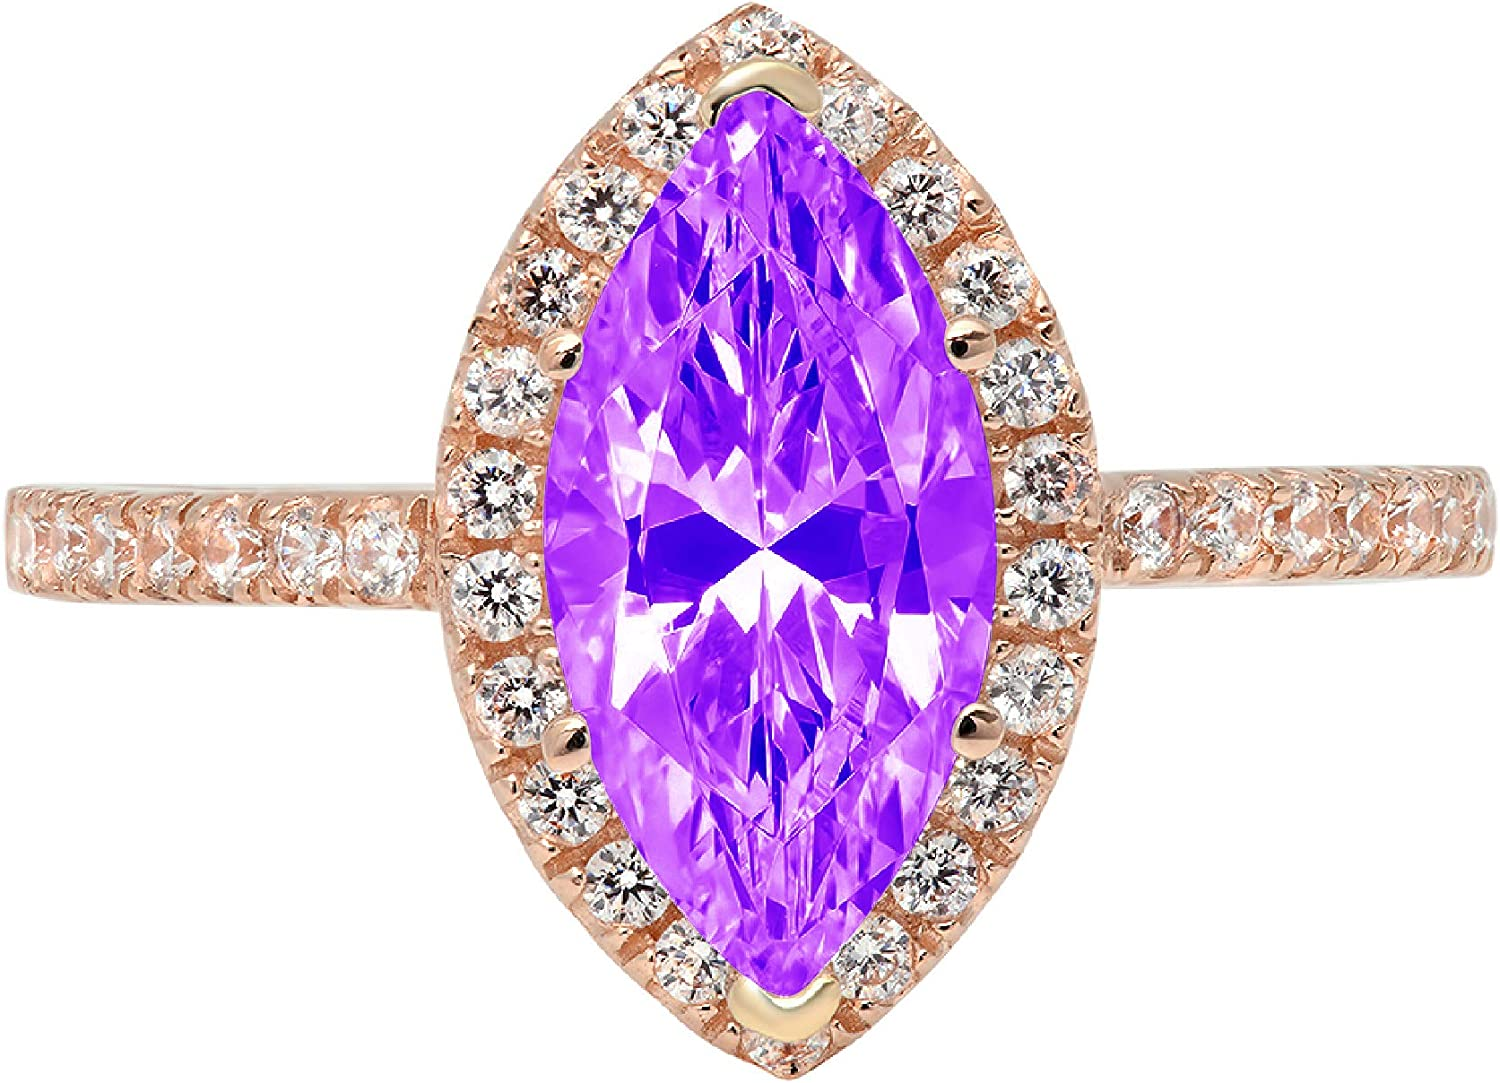 2.32ct Brilliant Marquise Cut Solitaire with Accent Halo Natural Purple Amethyst Gem Stone Ideal VVS1 Engagement Promise Statement Anniversary Bridal Wedding ring 14k Pink Rose Gold